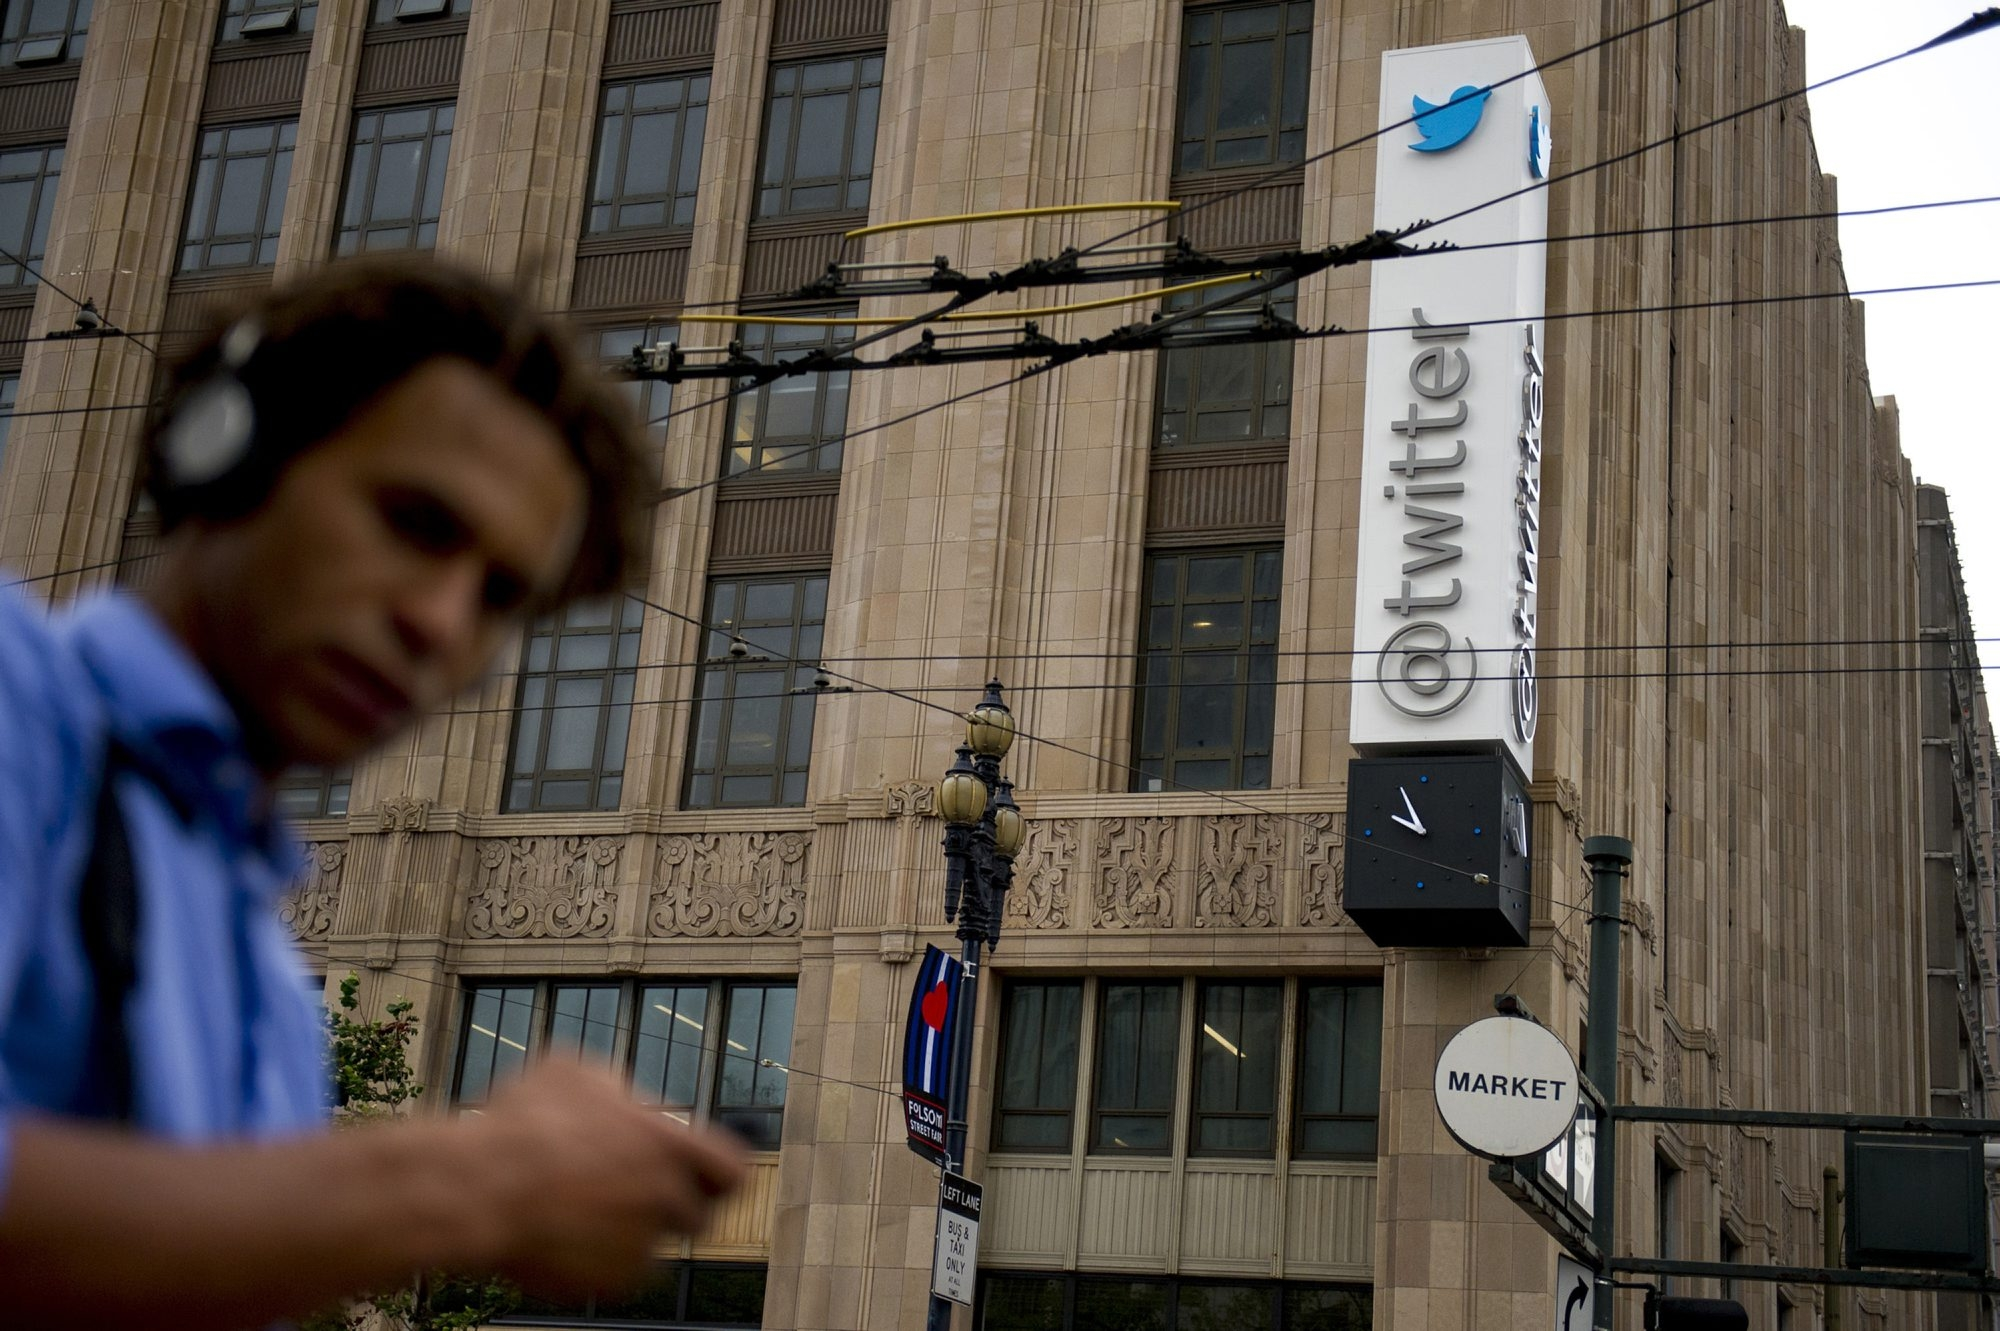 A pedestrian checks his mobile phone in front of Twitter Inc. headquarters in San Francisco, California, U.S., on Friday, Sept. 13, 2013. Twitter Inc.'s market debut will be the most anticipated initial public offering since Facebook Inc. listed last year, and the microblogging service is making sure to avoid some of its rival's pitfalls. Photographer: David Paul Morris/Bloomberg